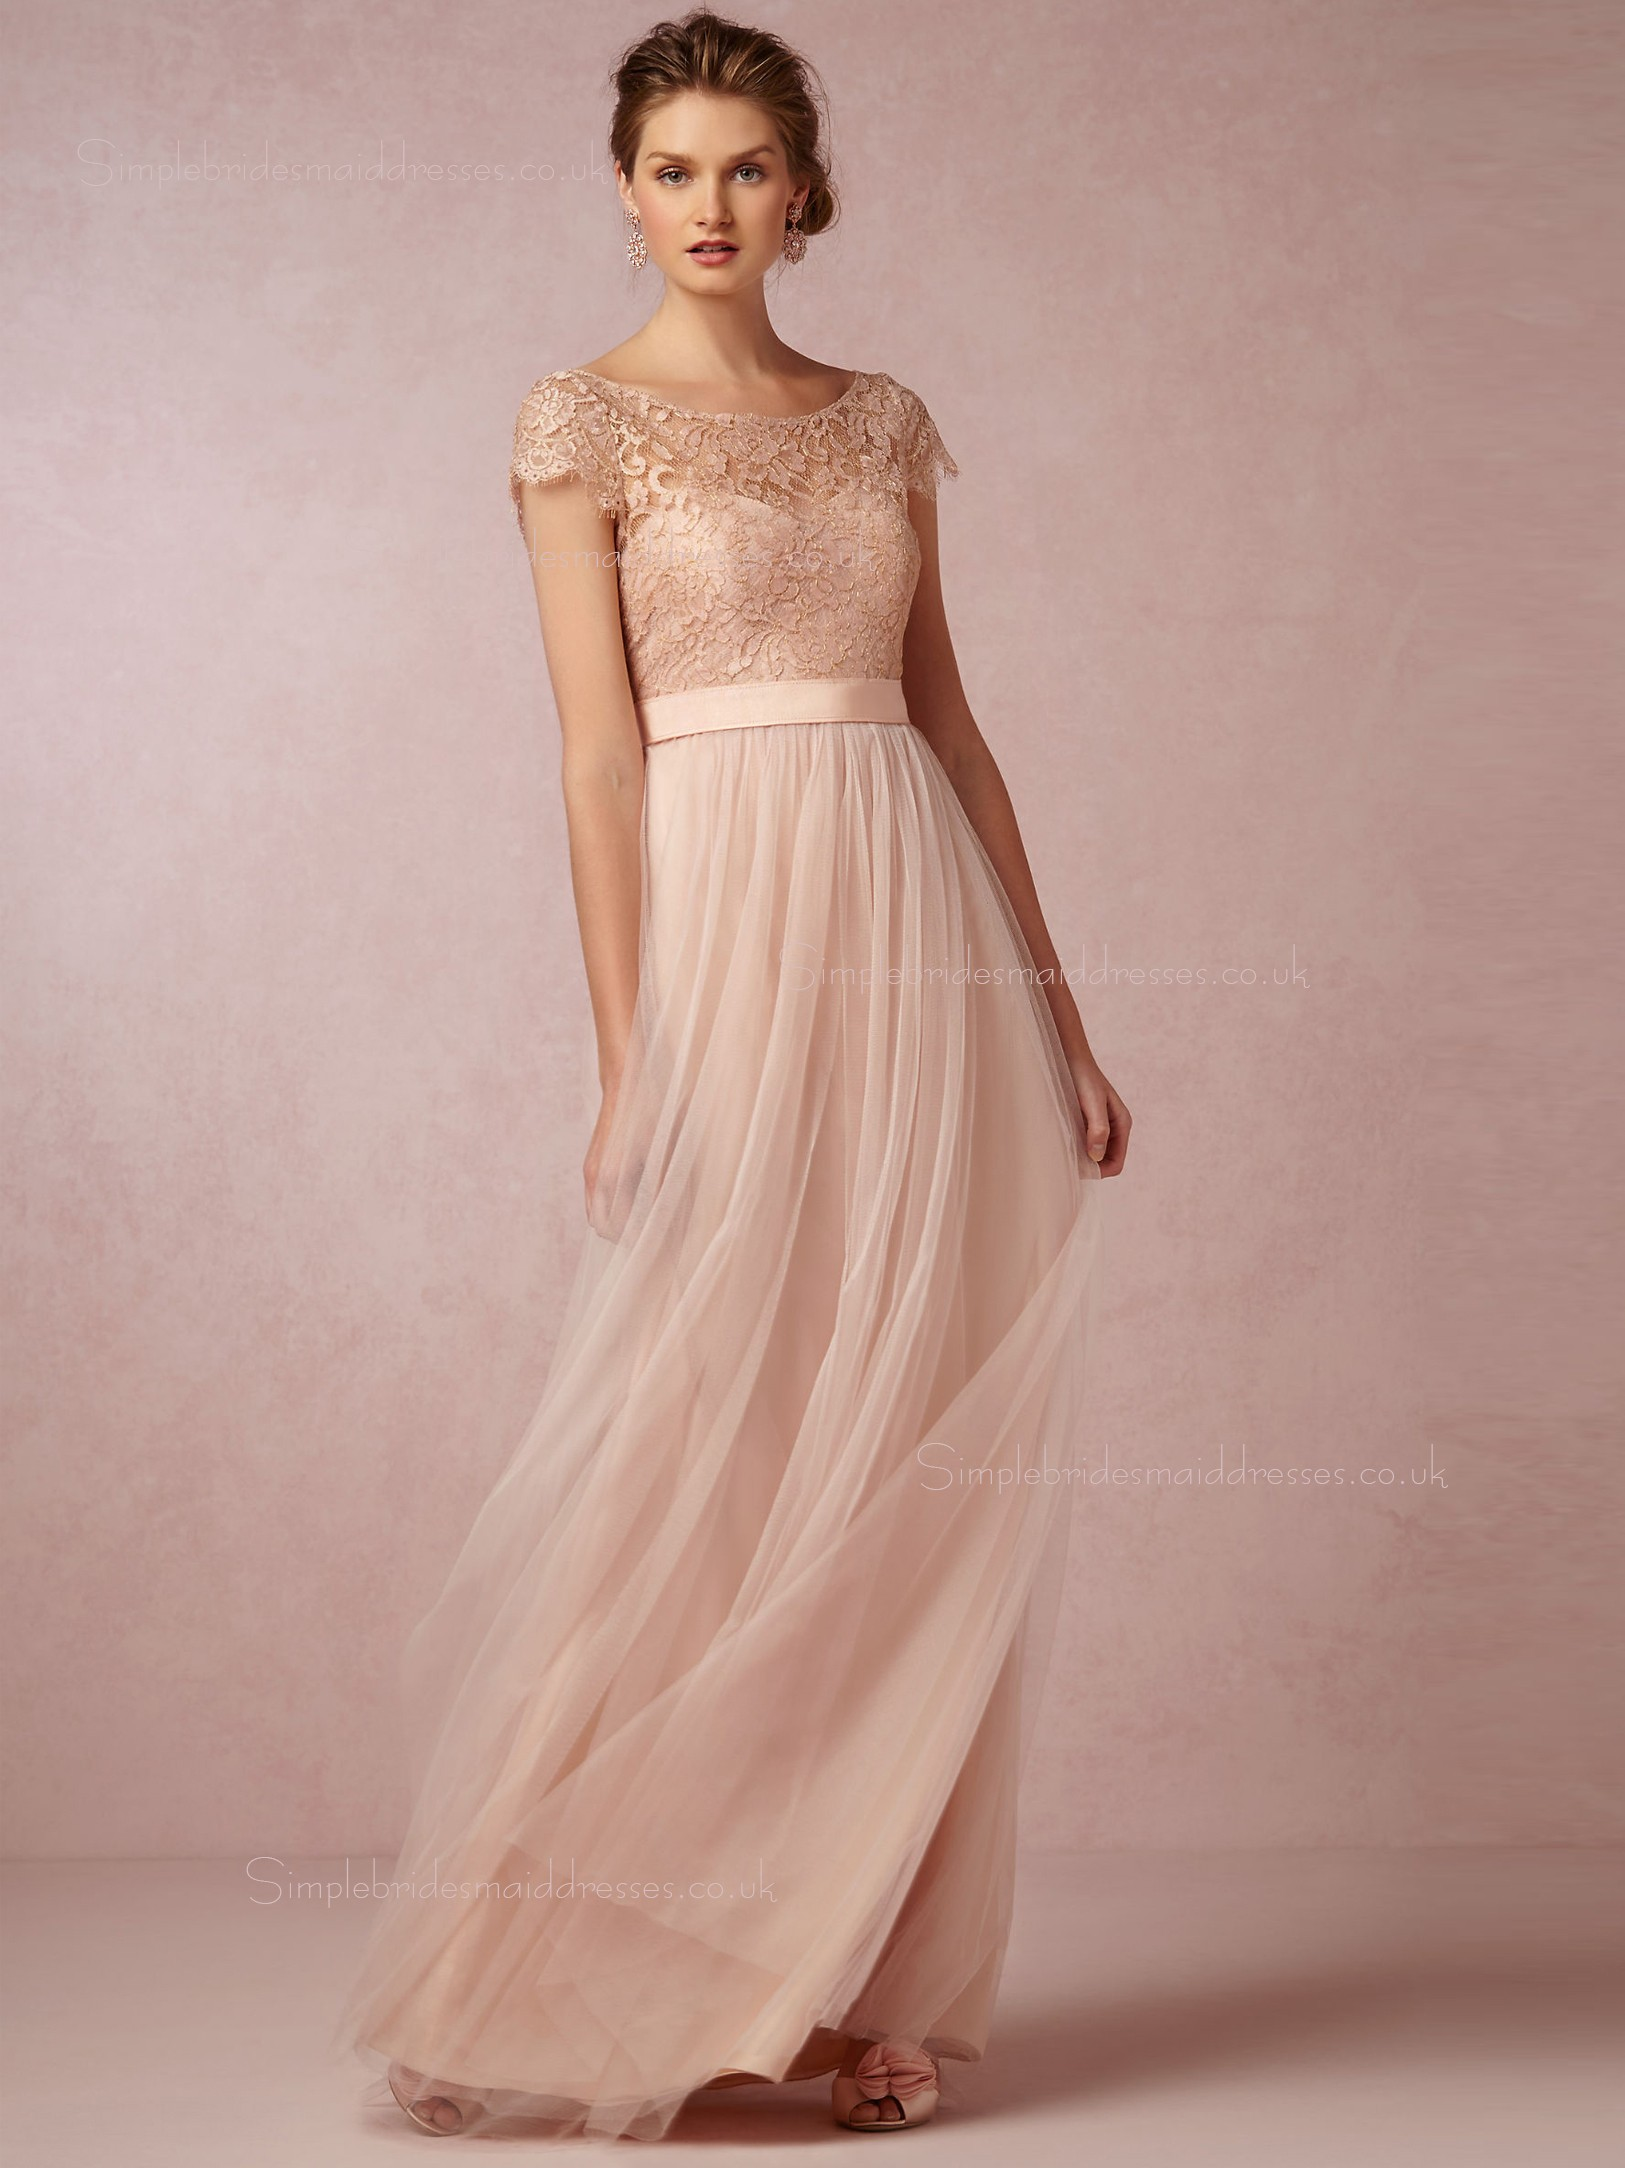 Pink Bridesmaid Dresses UK | Cheap Pink Bridesmaid Dresses ...